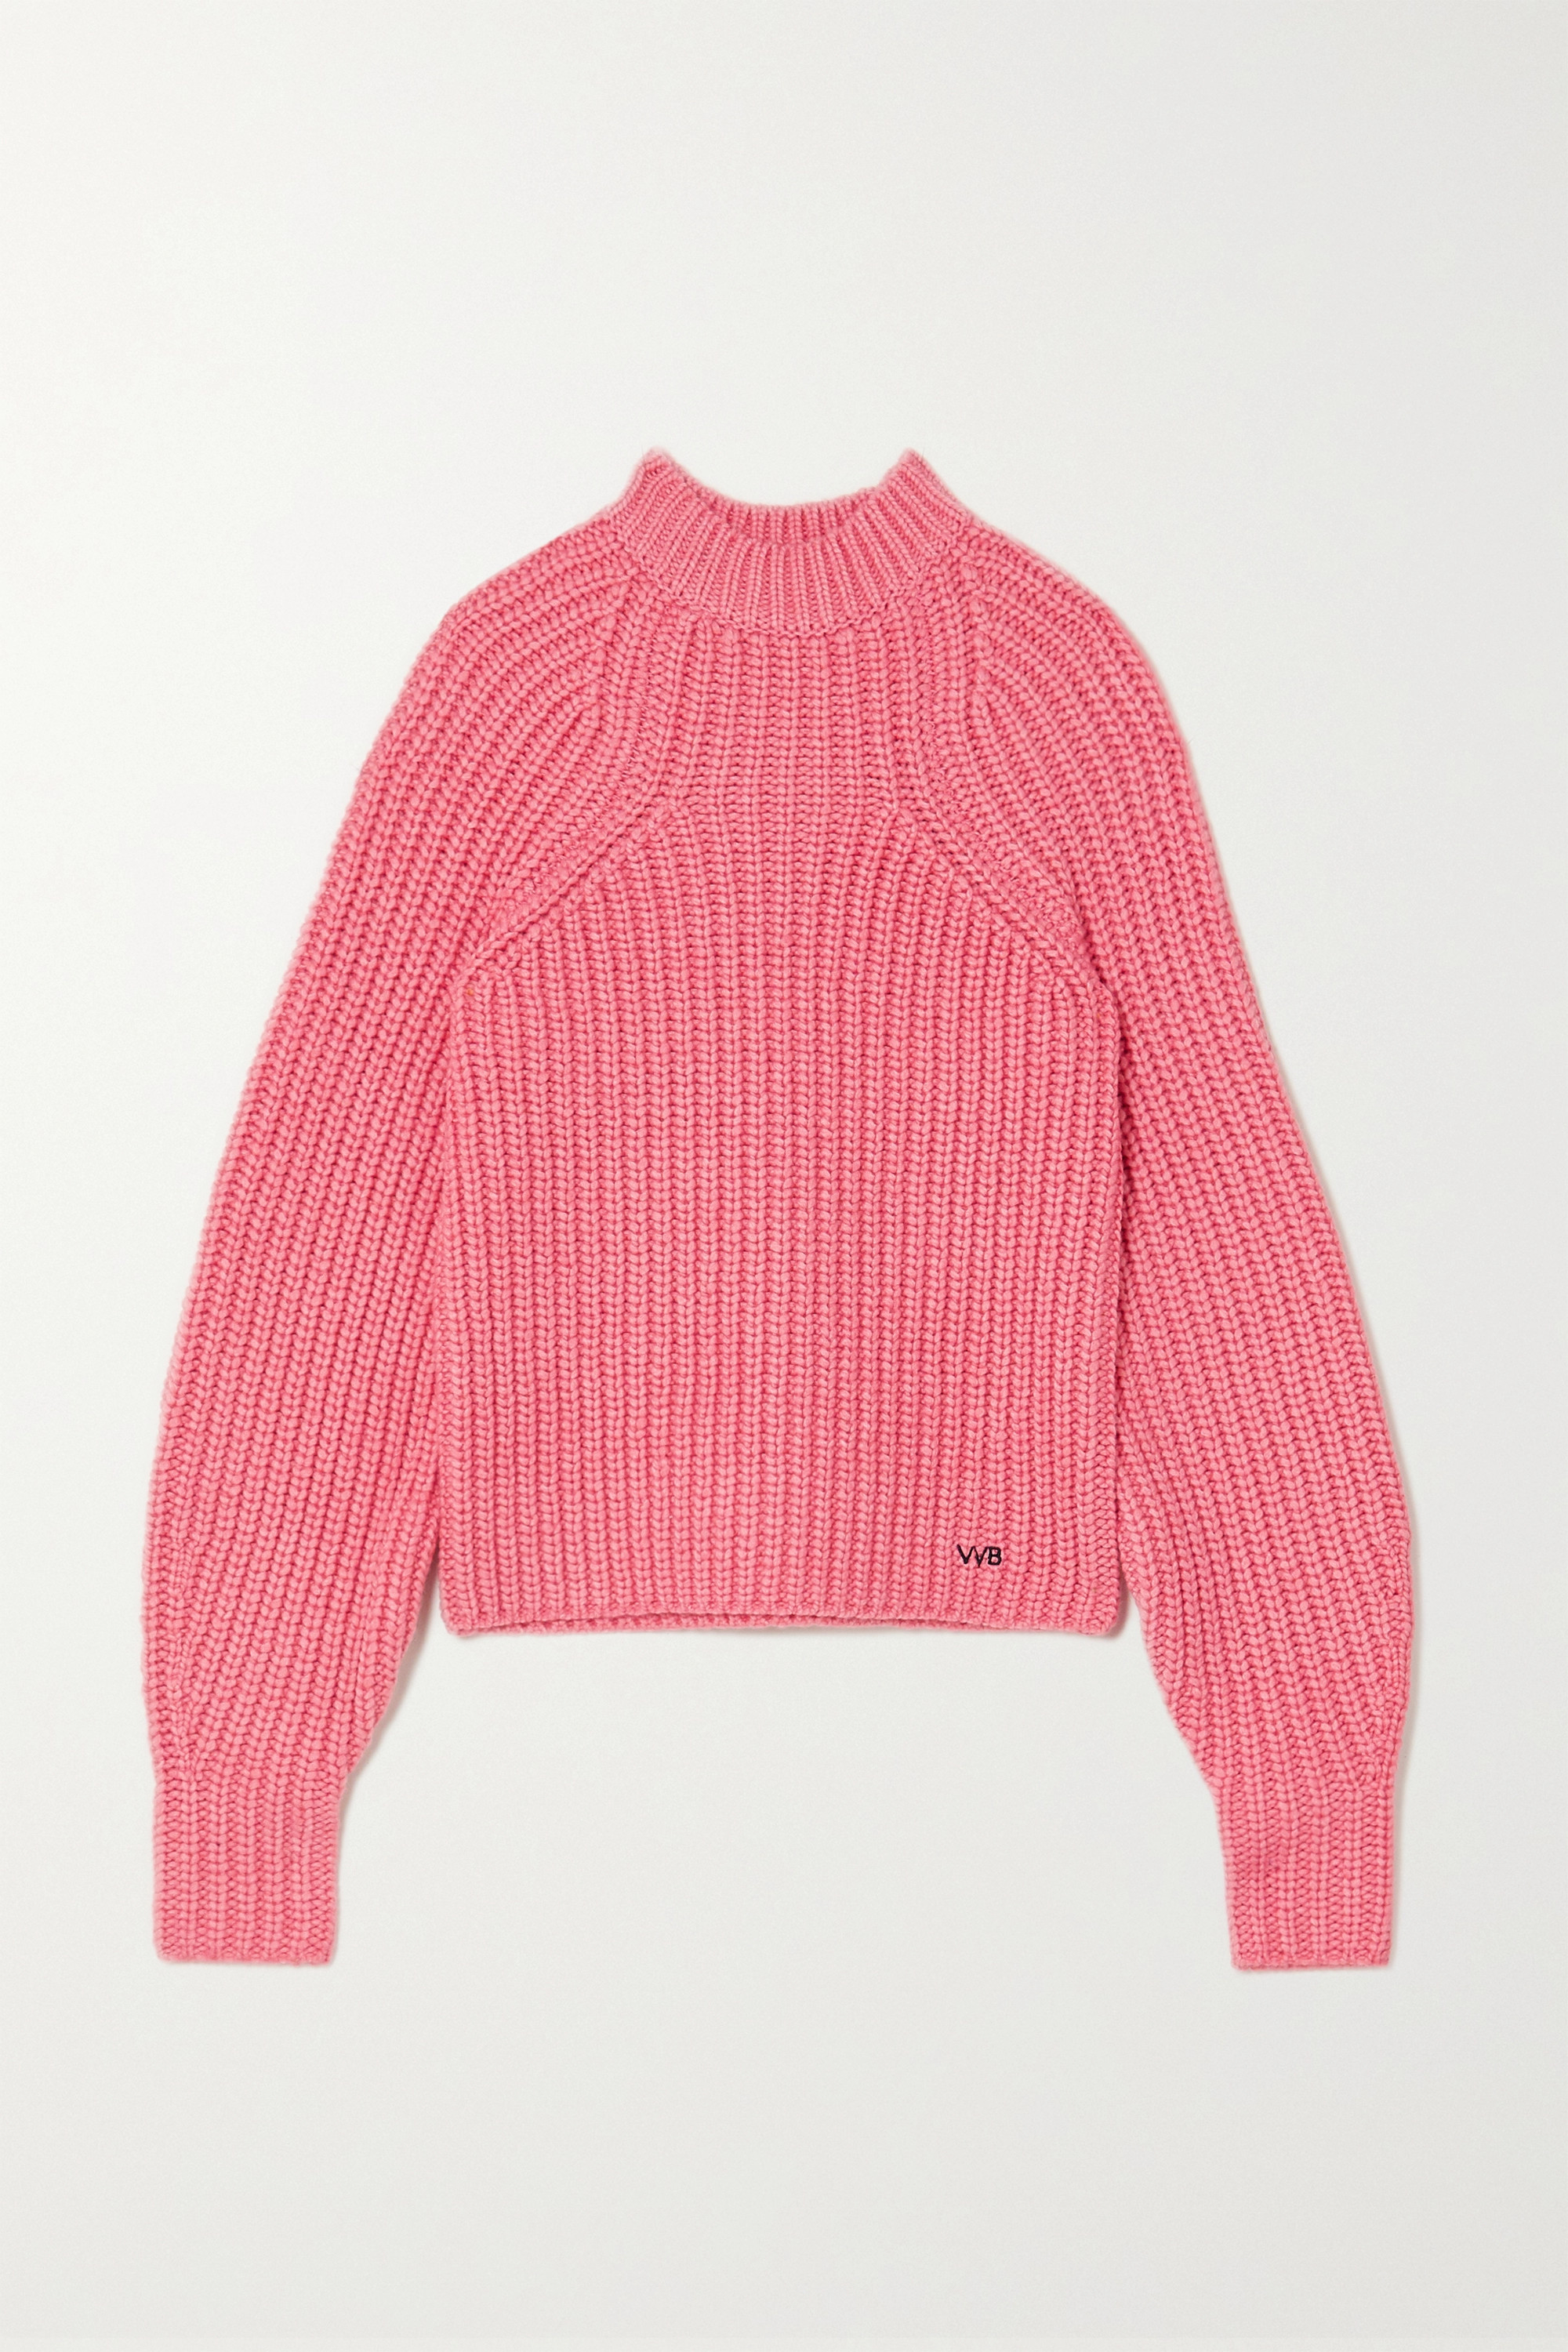 Chunky Ribbed Knit Pink